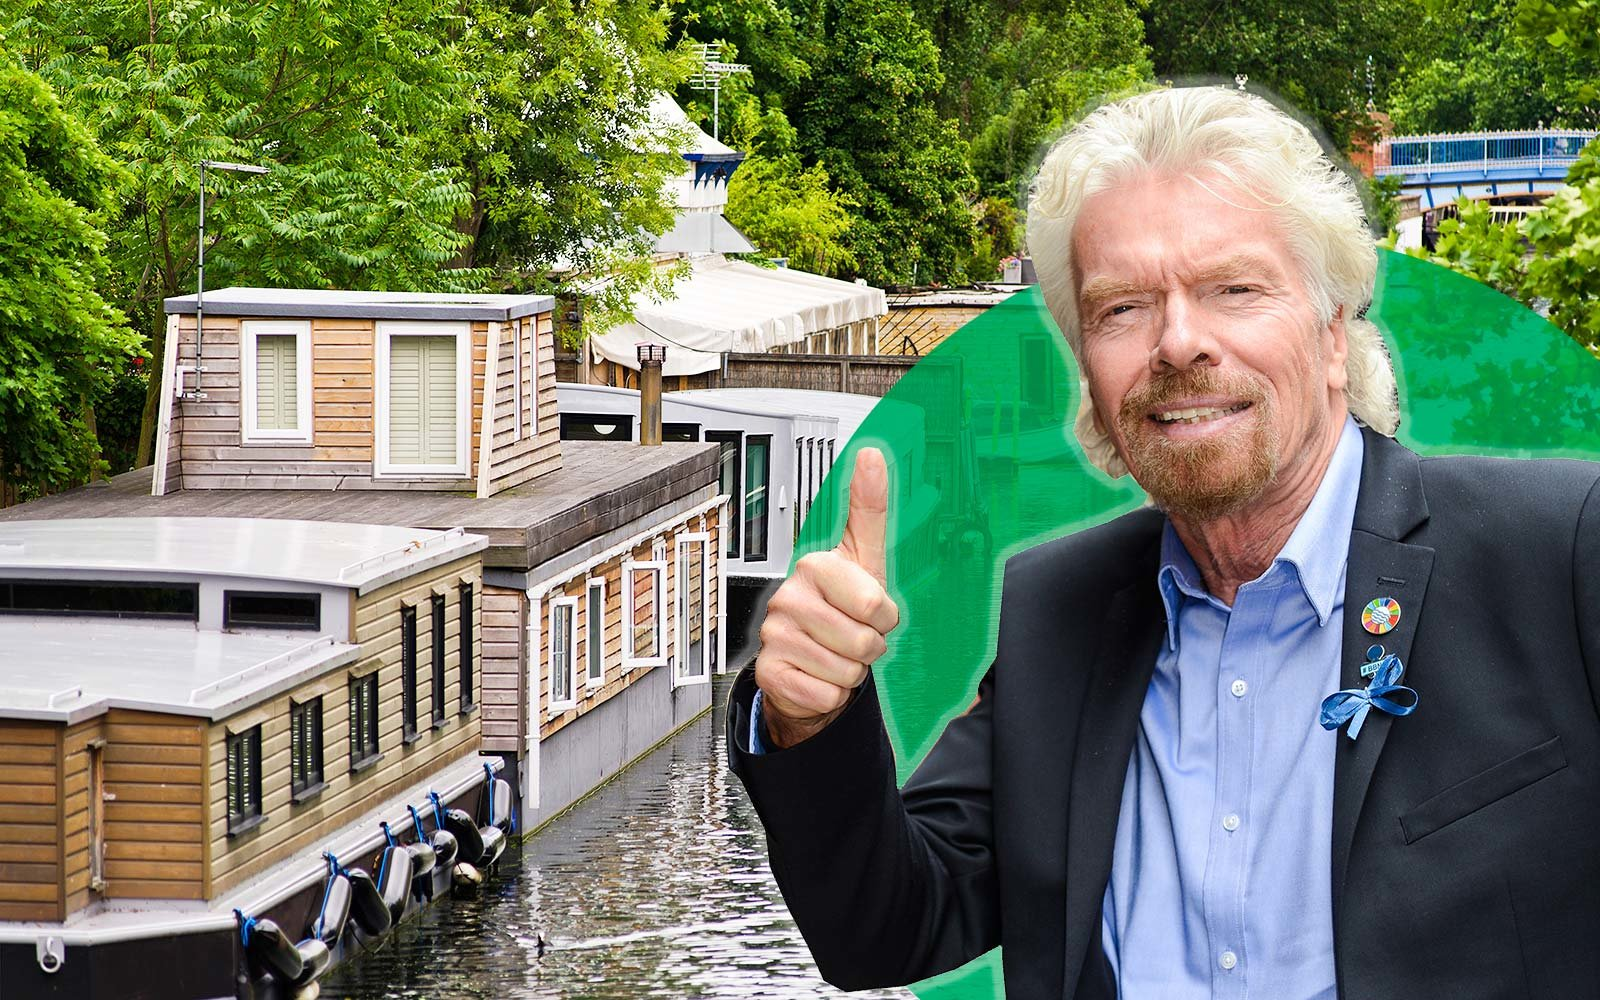 Richard Branson Houseboat London Little Venice Canal Boat Rental UK